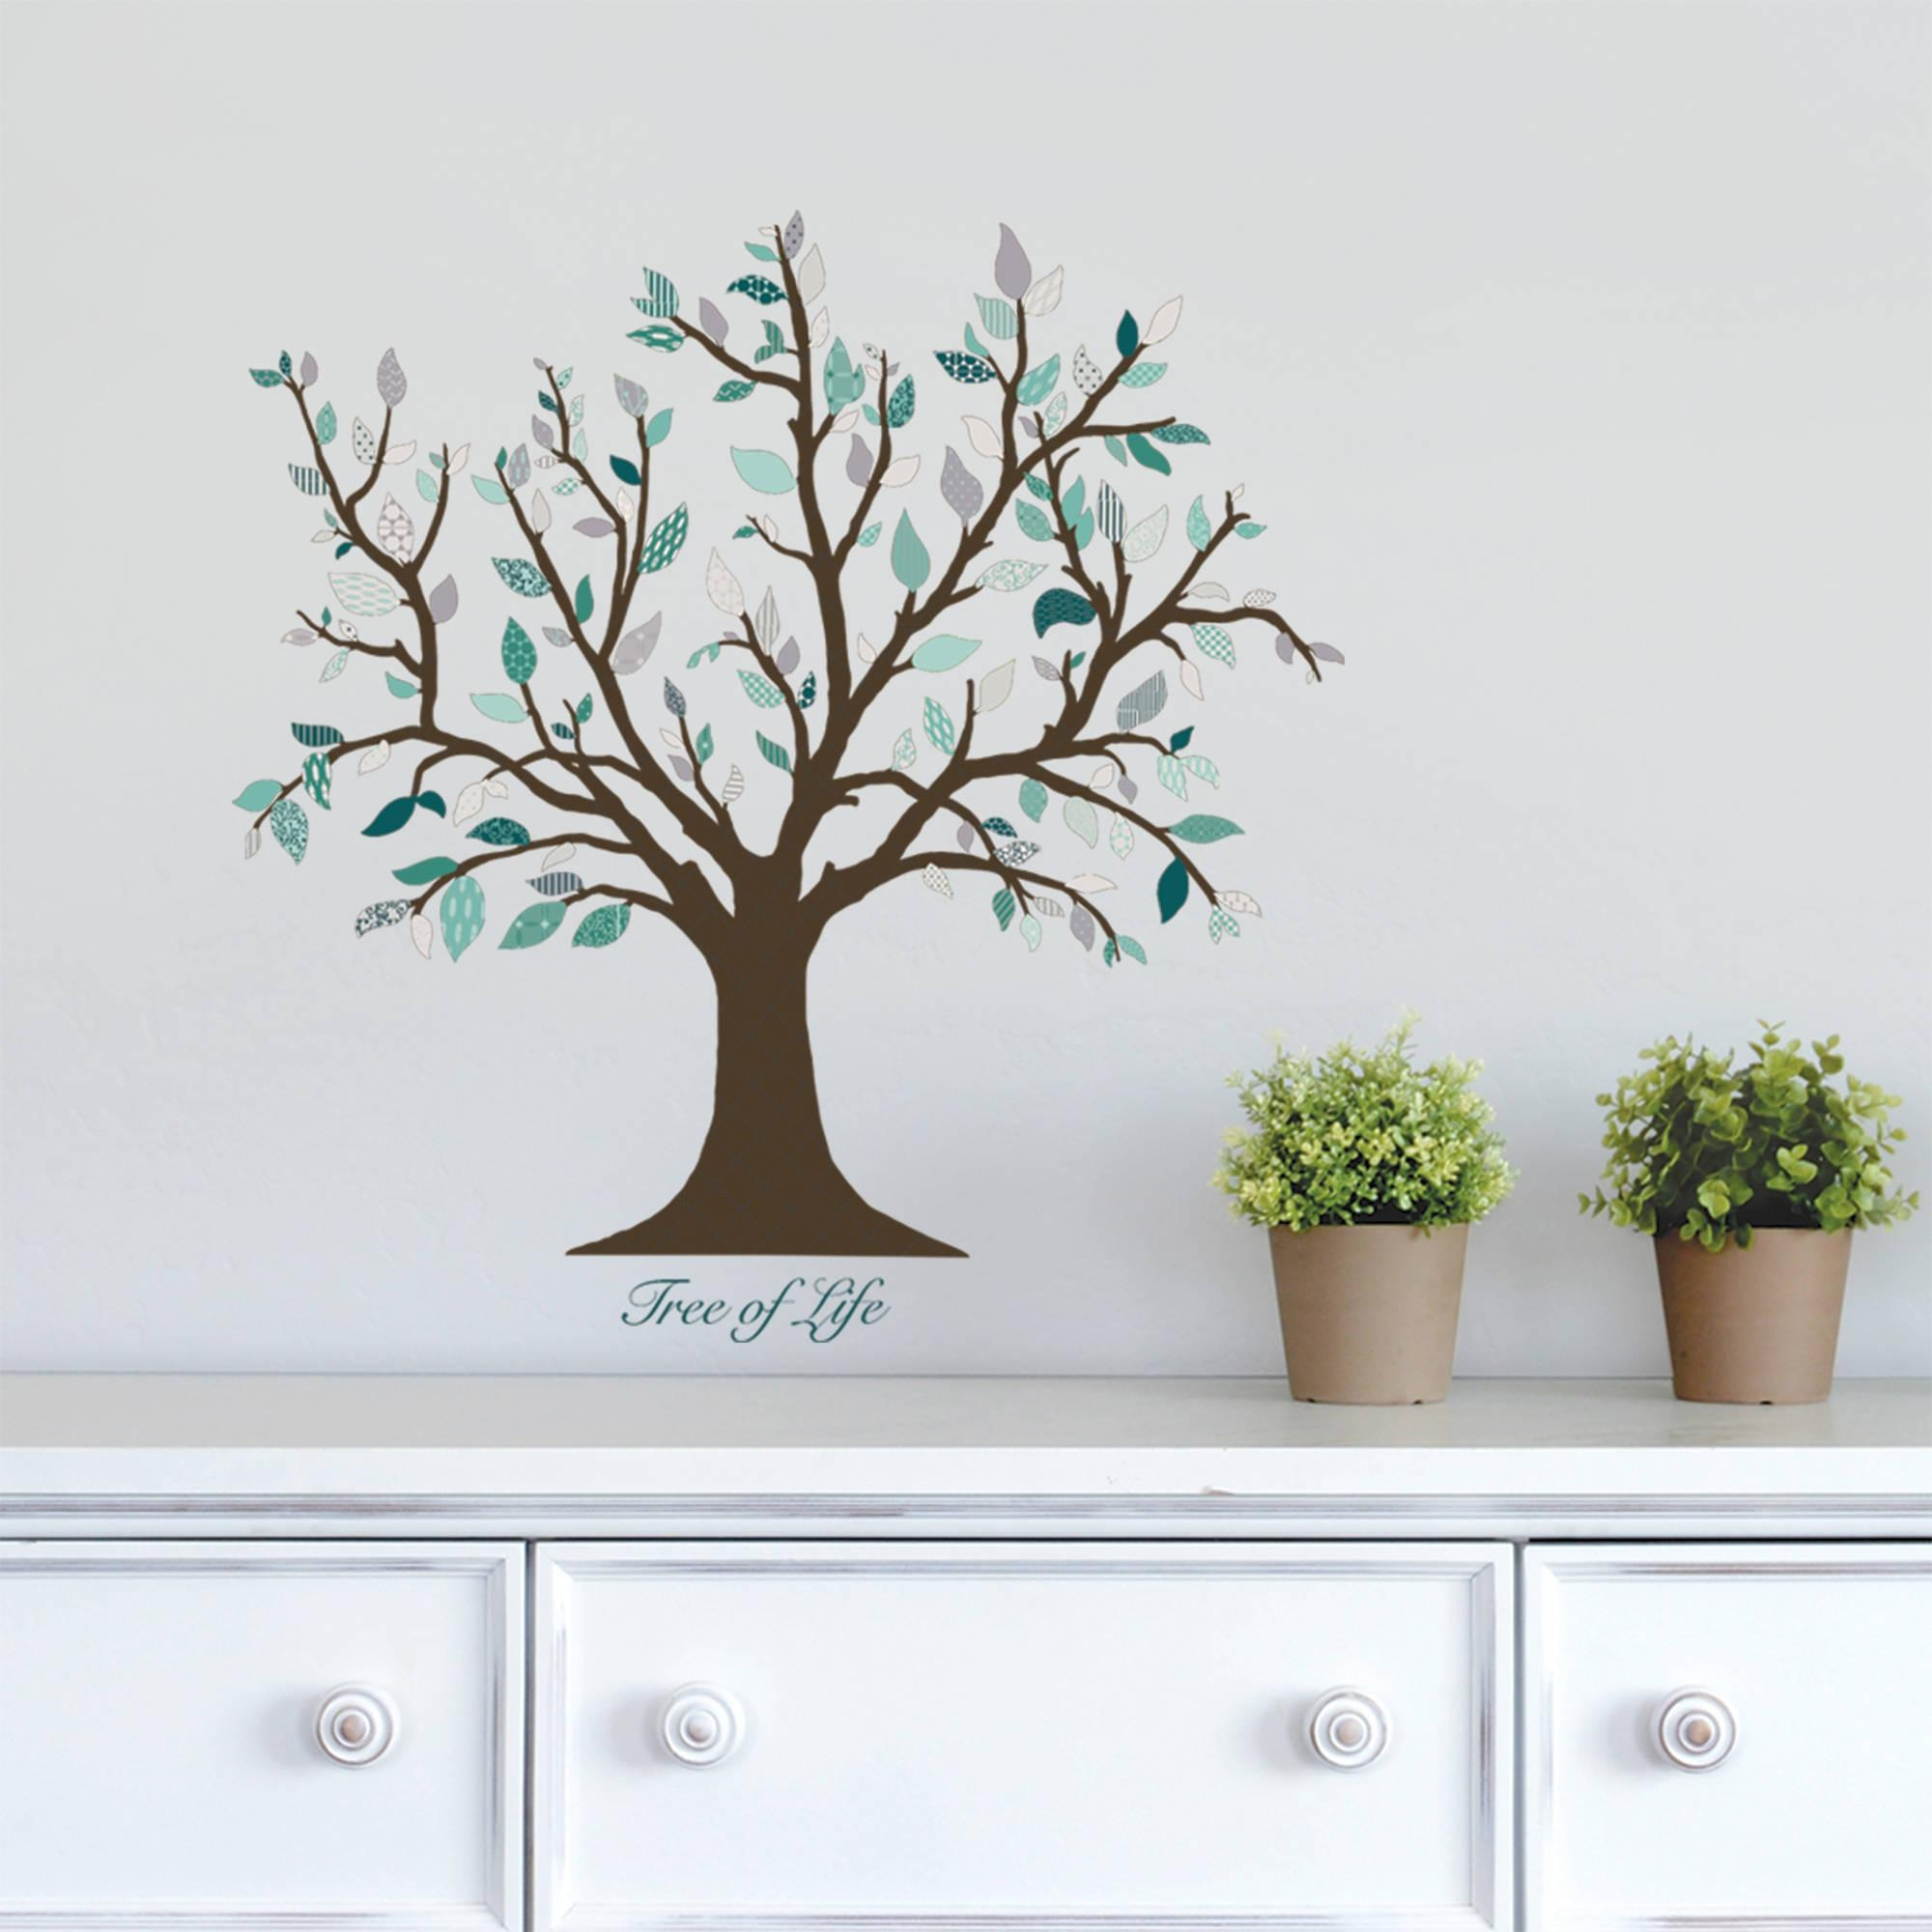 Dcwv Vinyl Tree Of Life Wall Decal – Walmart Regarding Walmart Wall Stickers (View 16 of 20)